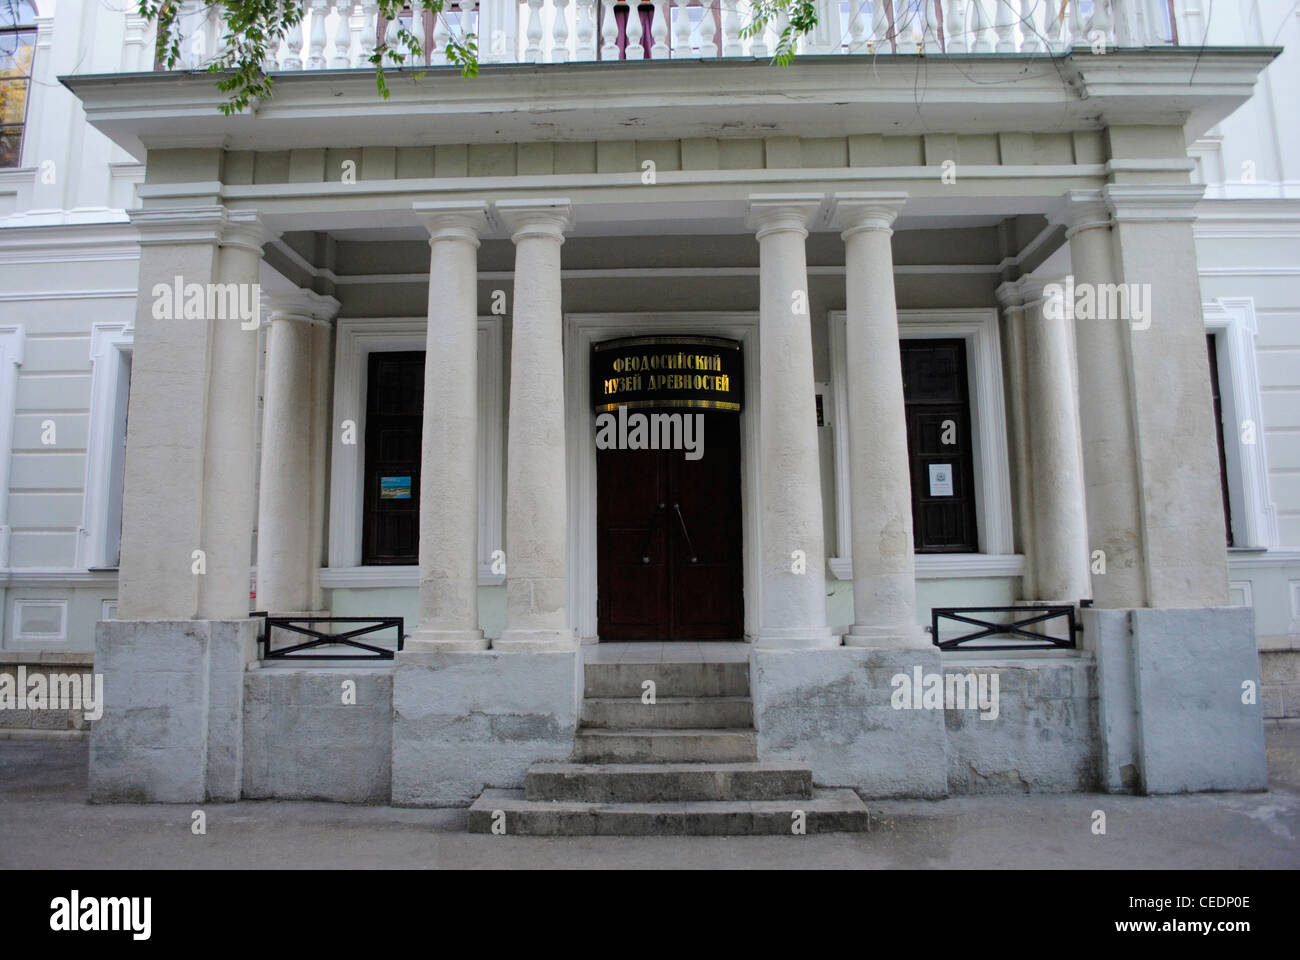 Ukraine. Autonomous Republic of Crimea. Feodosiya Museum of Regional Studies. Facade. - Stock Image